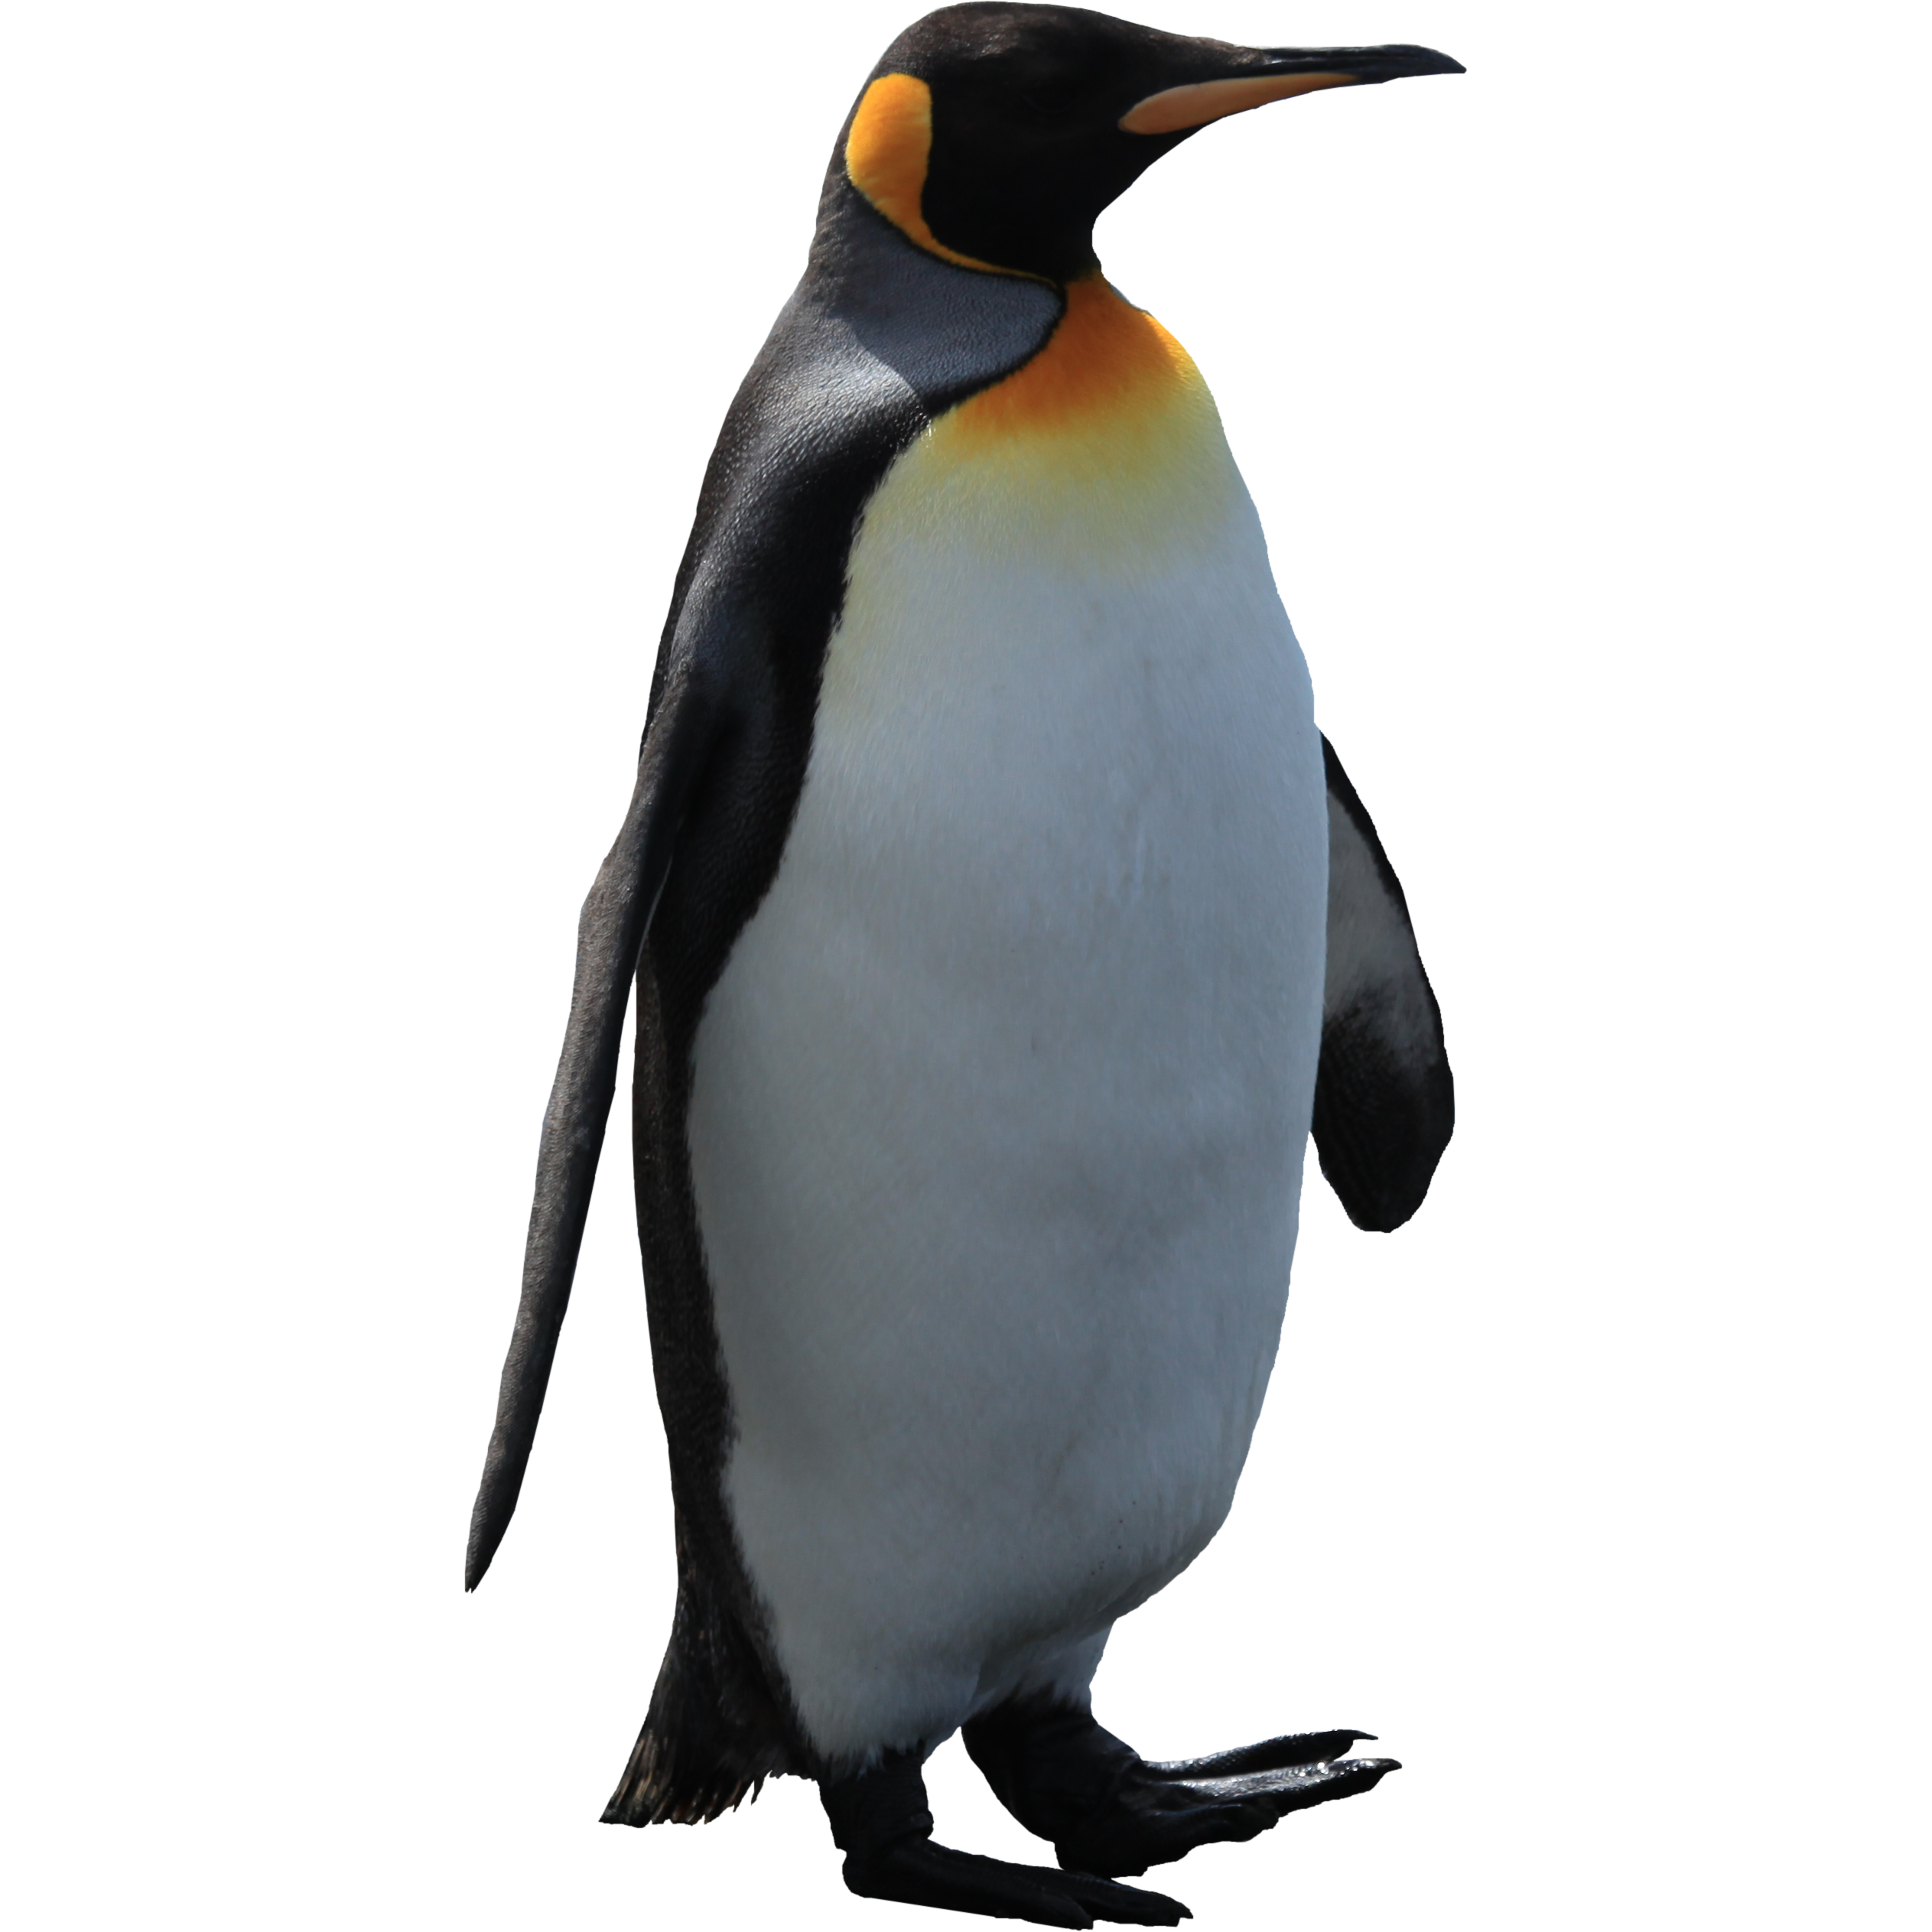 Imperator penguin PNG image image with transparent